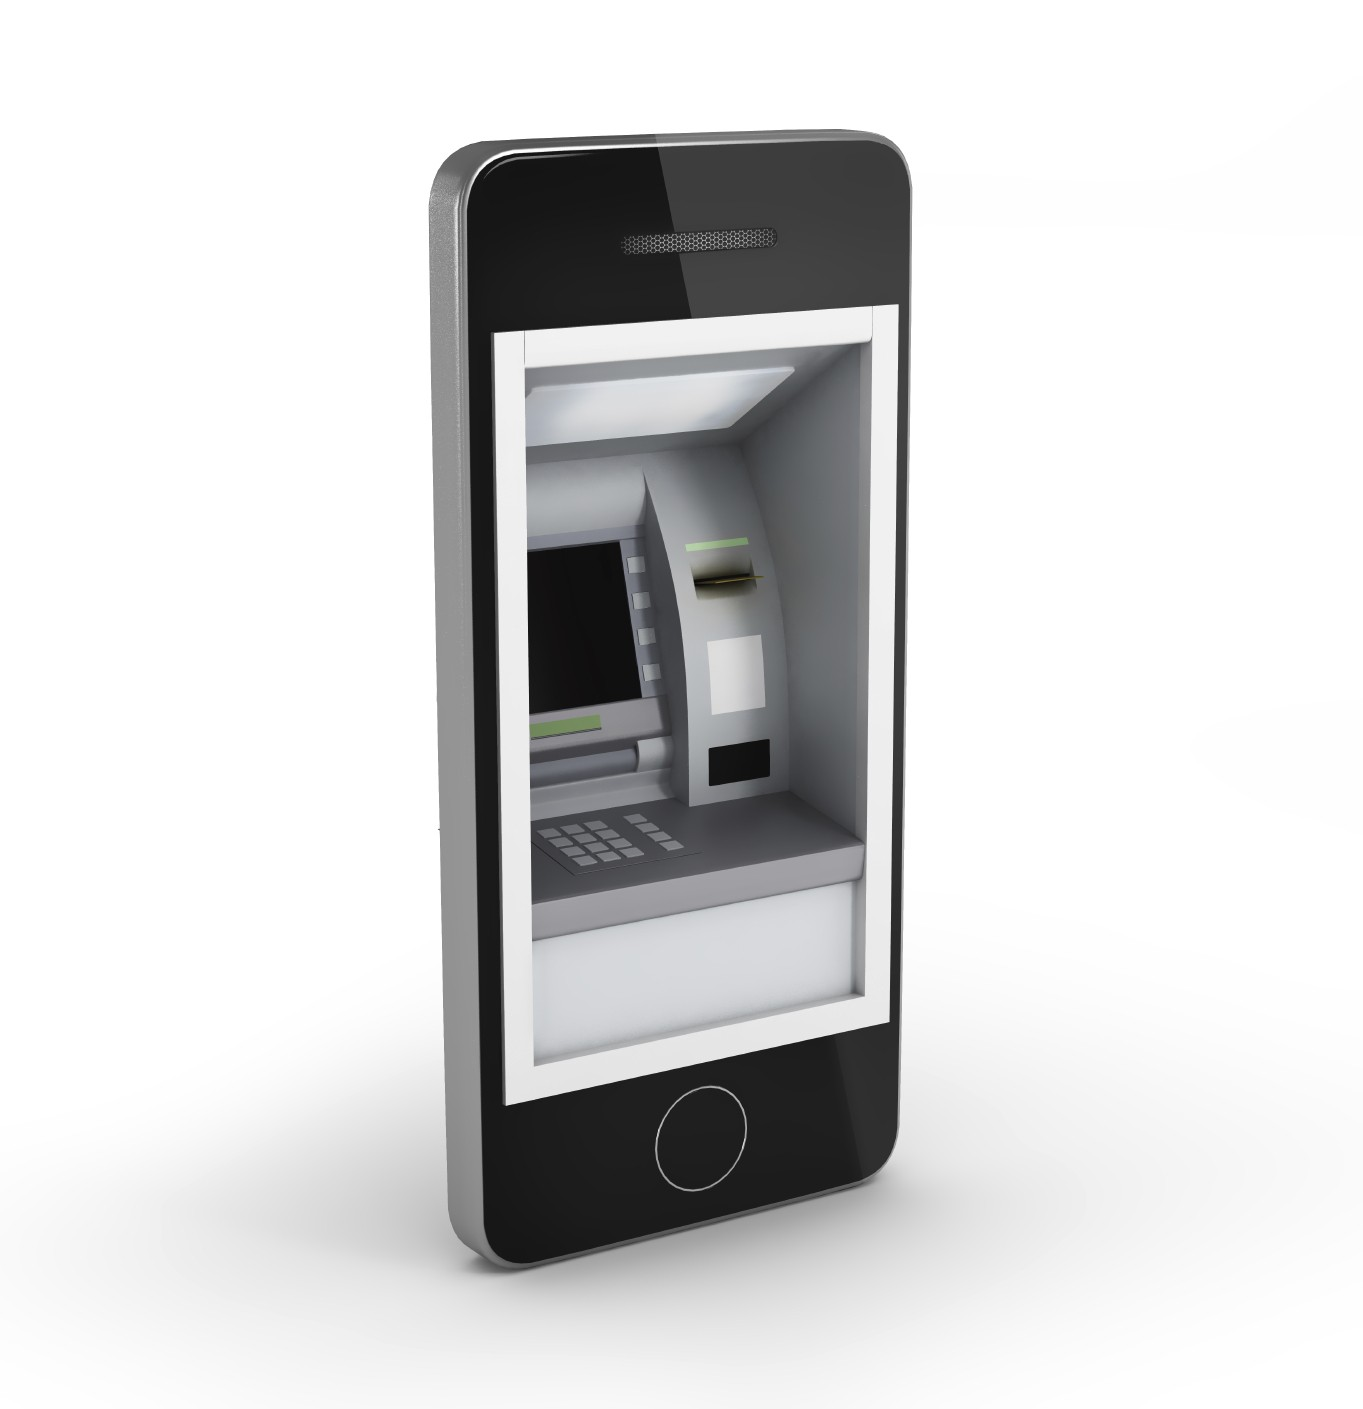 Online payments concept. Mobile Phone with ATM and Credit Card o